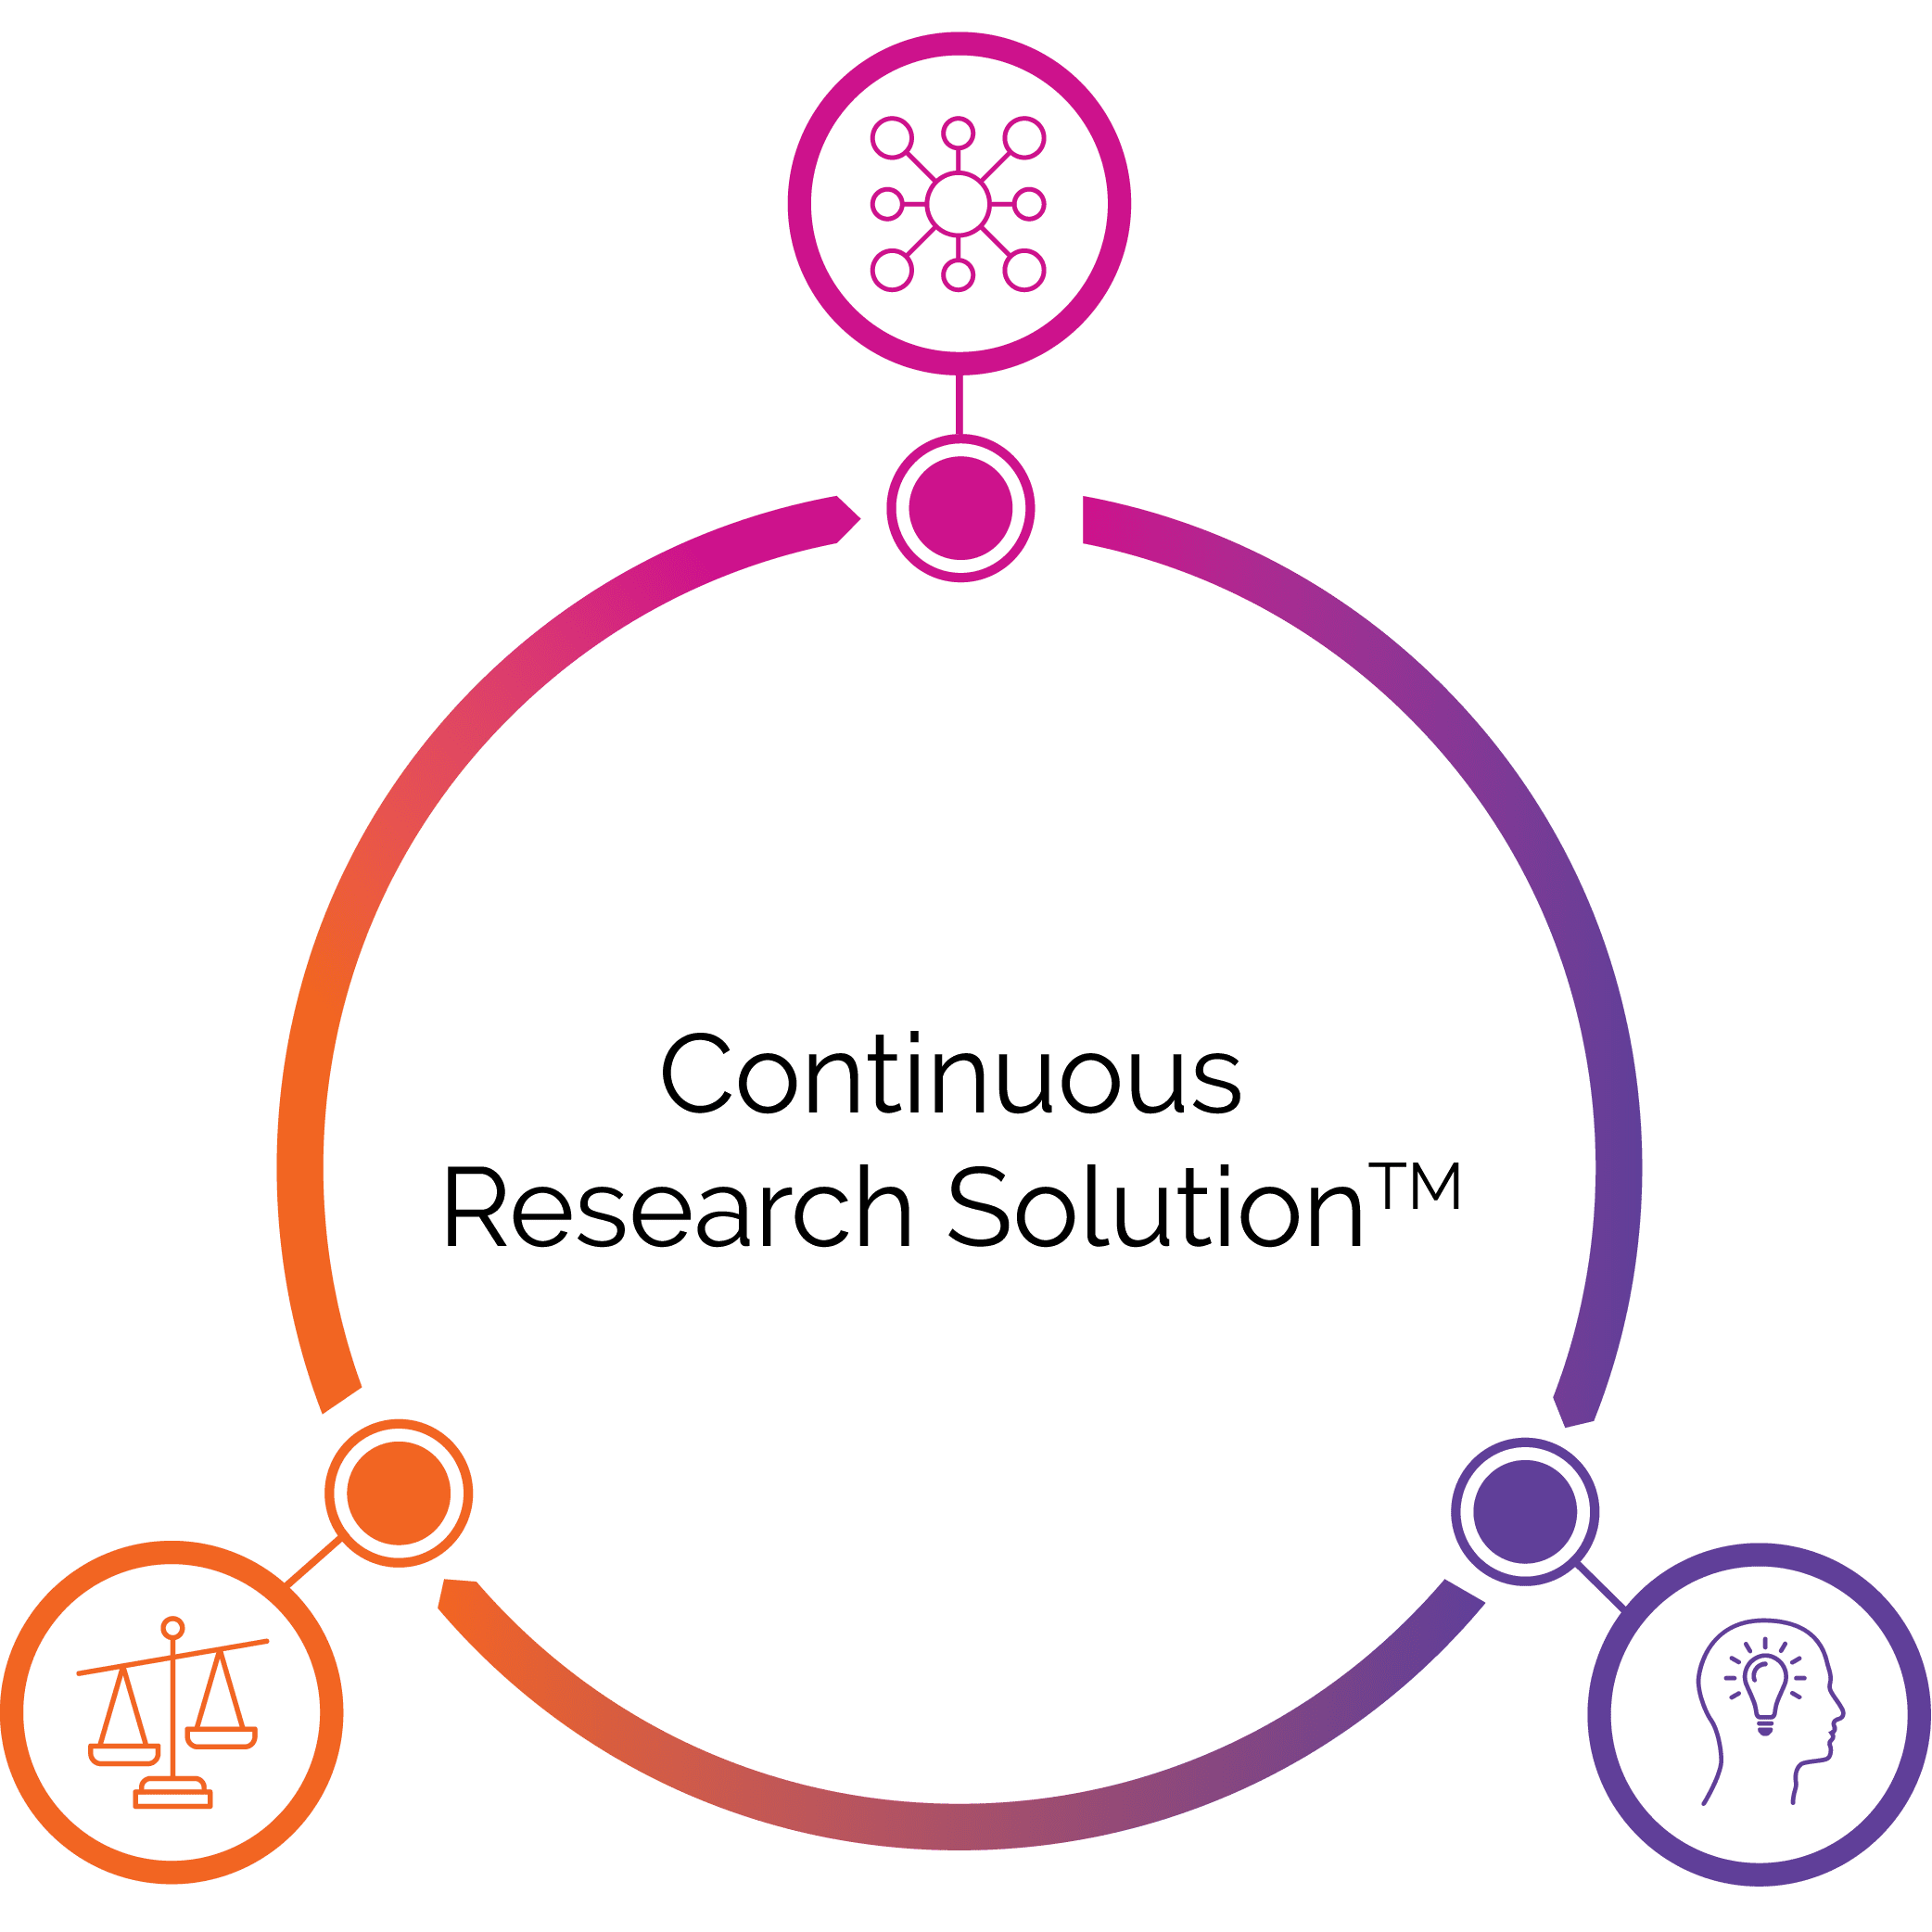 Fuel Cycle Web Graphic: Continuous Research Illustration